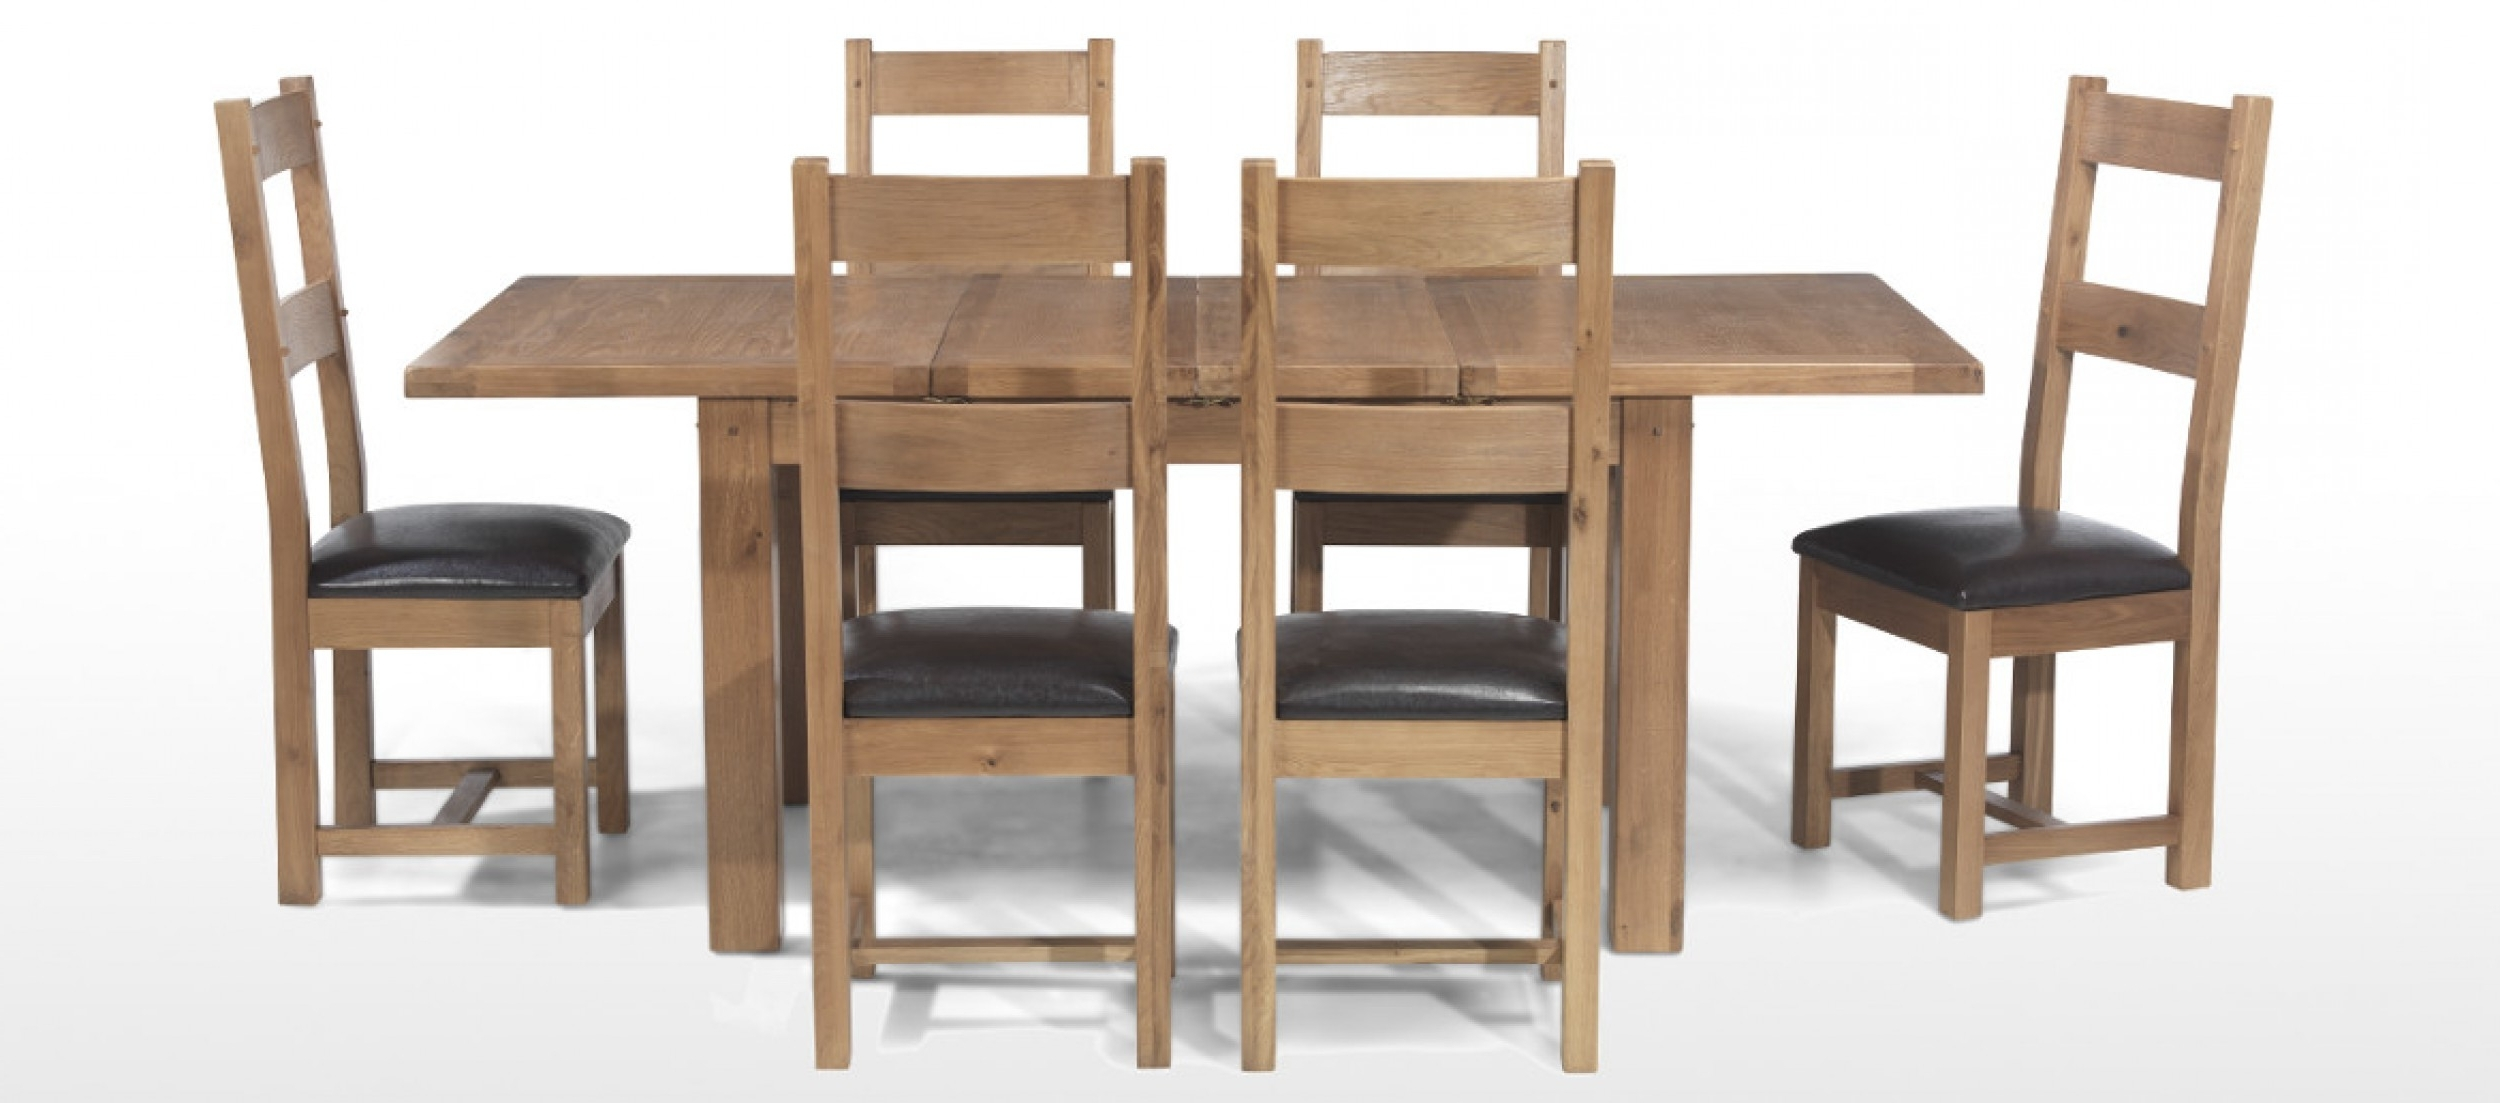 Widely Used Extendable Dining Tables With 6 Chairs Throughout Rustic Oak 132 198 Cm Extending Dining Table And 6 Chairs (View 25 of 25)